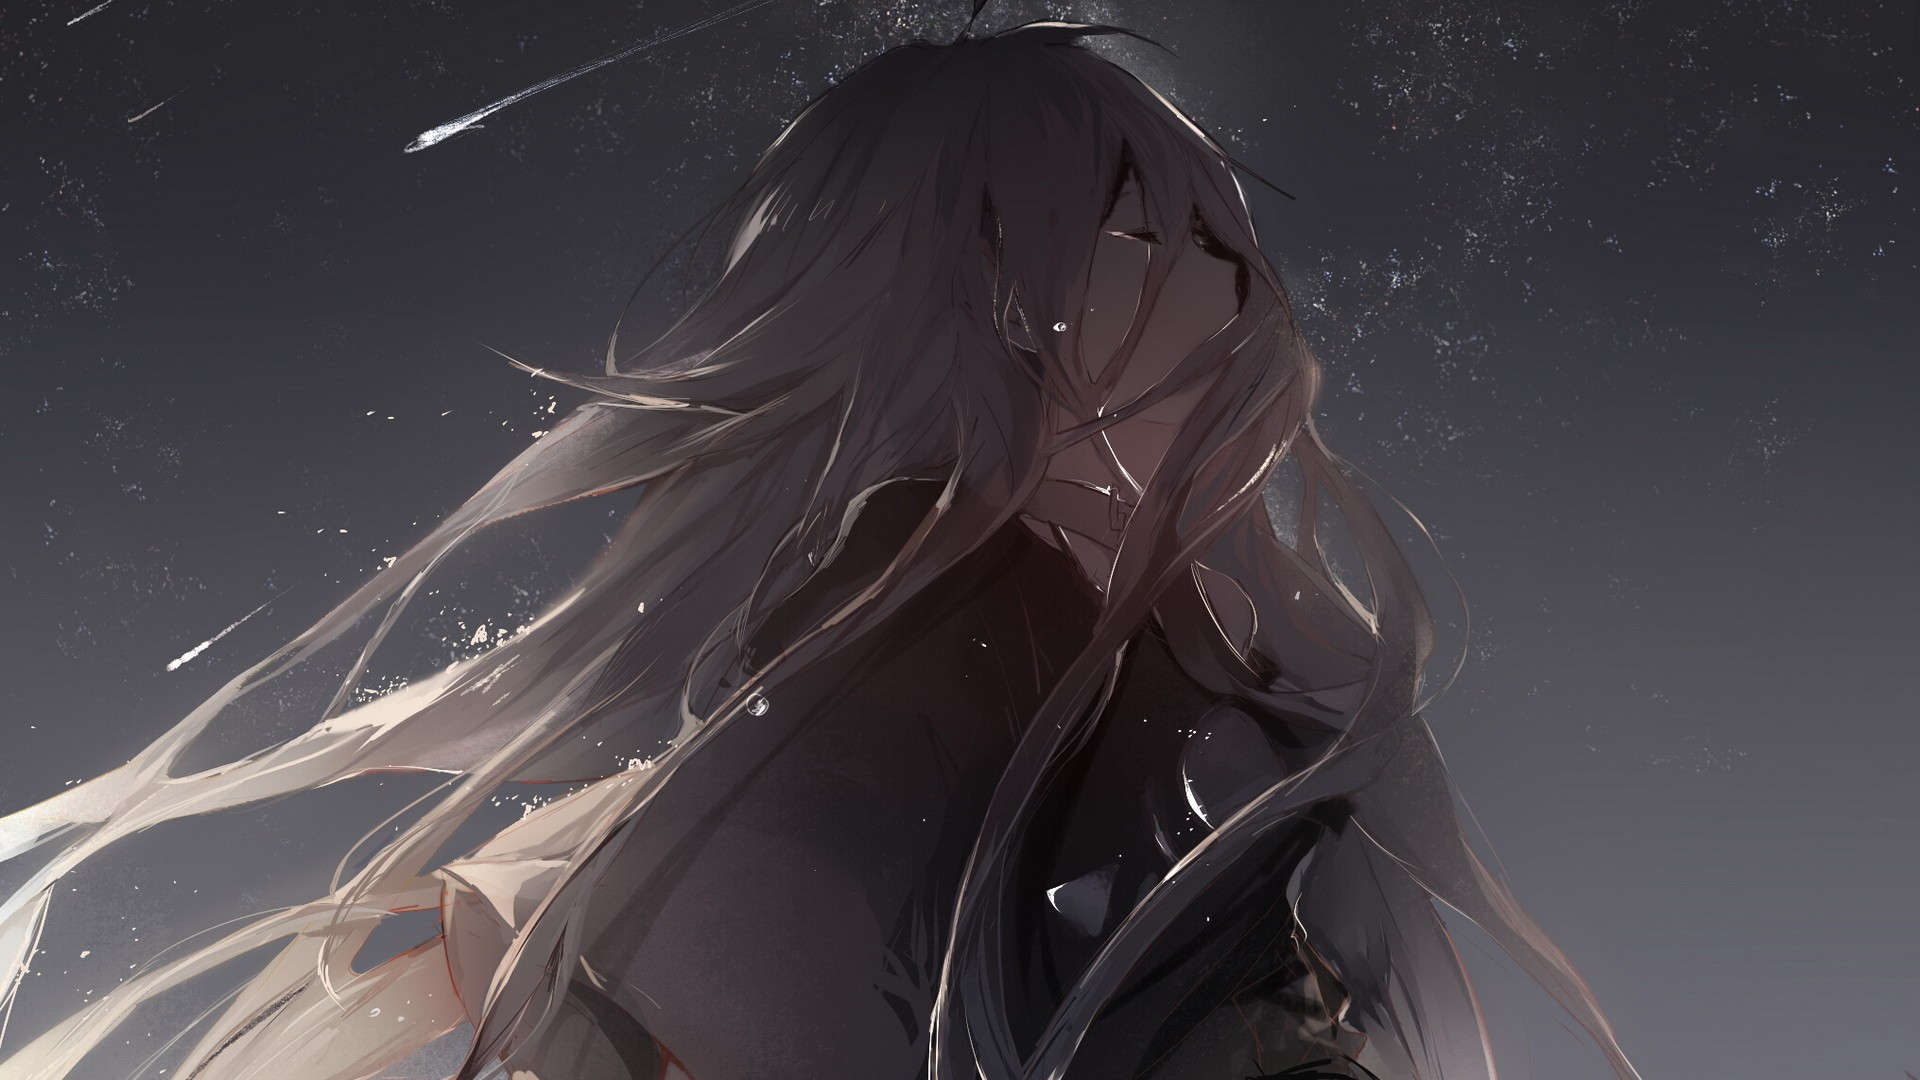 Free Download Sad Anime Girl Wallpapers Hd Backgrounds Images Pics